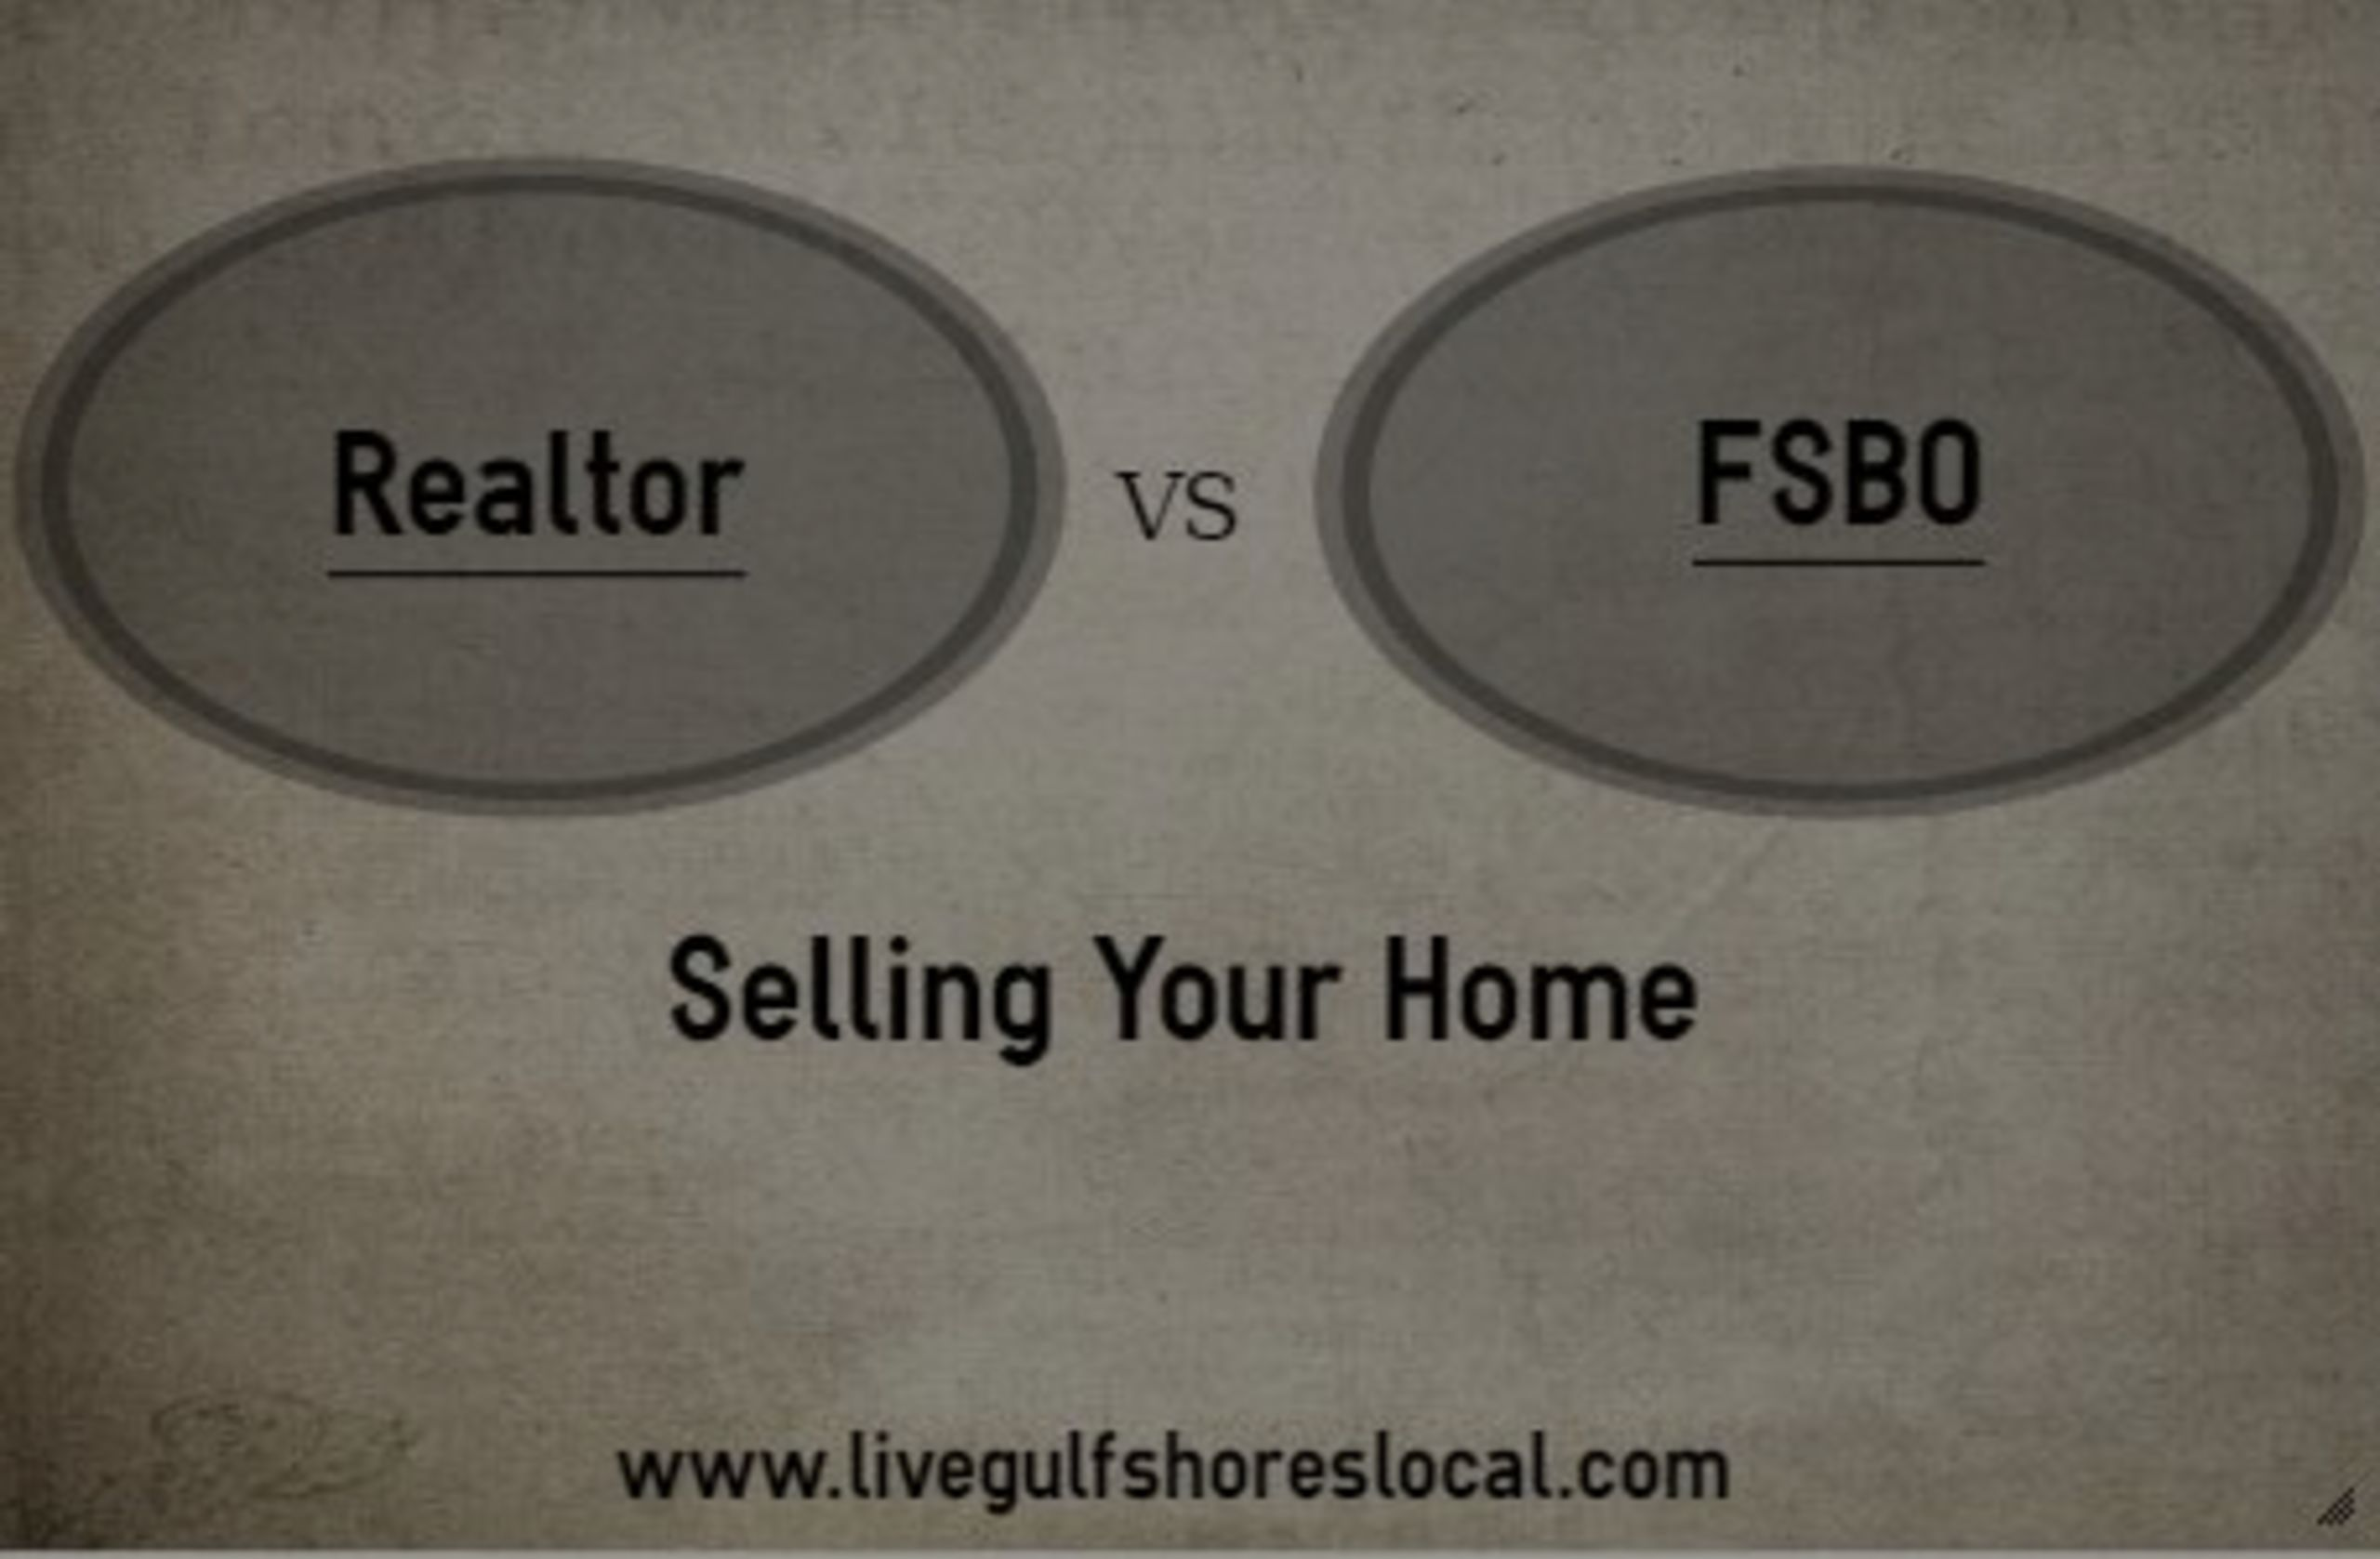 Realtor vs FSBO – Selling Your Home